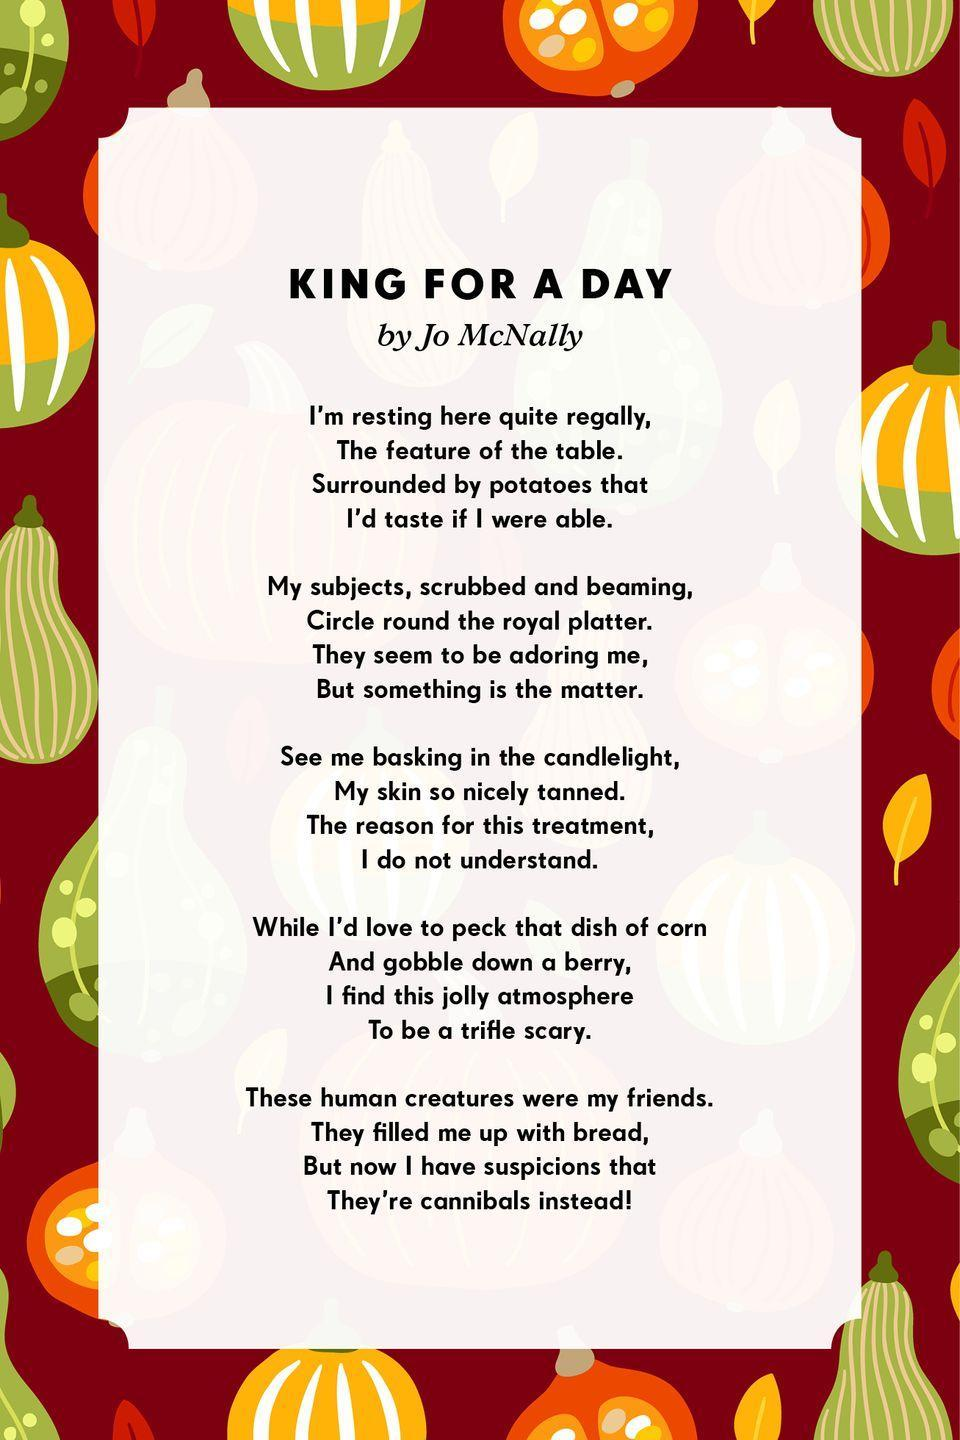 <p><strong>King for A Day</strong></p><p>I'm resting here quite regally,<br>The feature of the table.<br>Surrounded by potatoes that<br>I'd taste if I were able.<br><br>My subjects, scrubbed and beaming,<br>Circle round the royal platter.<br>They seem to be adoring me,<br>But something is the matter.<br><br>See me basking in the candlelight,<br>My skin so nicely tanned.<br>The reason for this treatment,<br>I do not understand.<br><br>While I'd love to peck that dish of corn<br>And gobble down a berry,<br>I find this jolly atmosphere<br>To be a trifle scary.<br><br>These human creatures were my friends.<br>They filled me up with bread,<br>But now I have suspicions that<br>They're cannibals instead!</p>